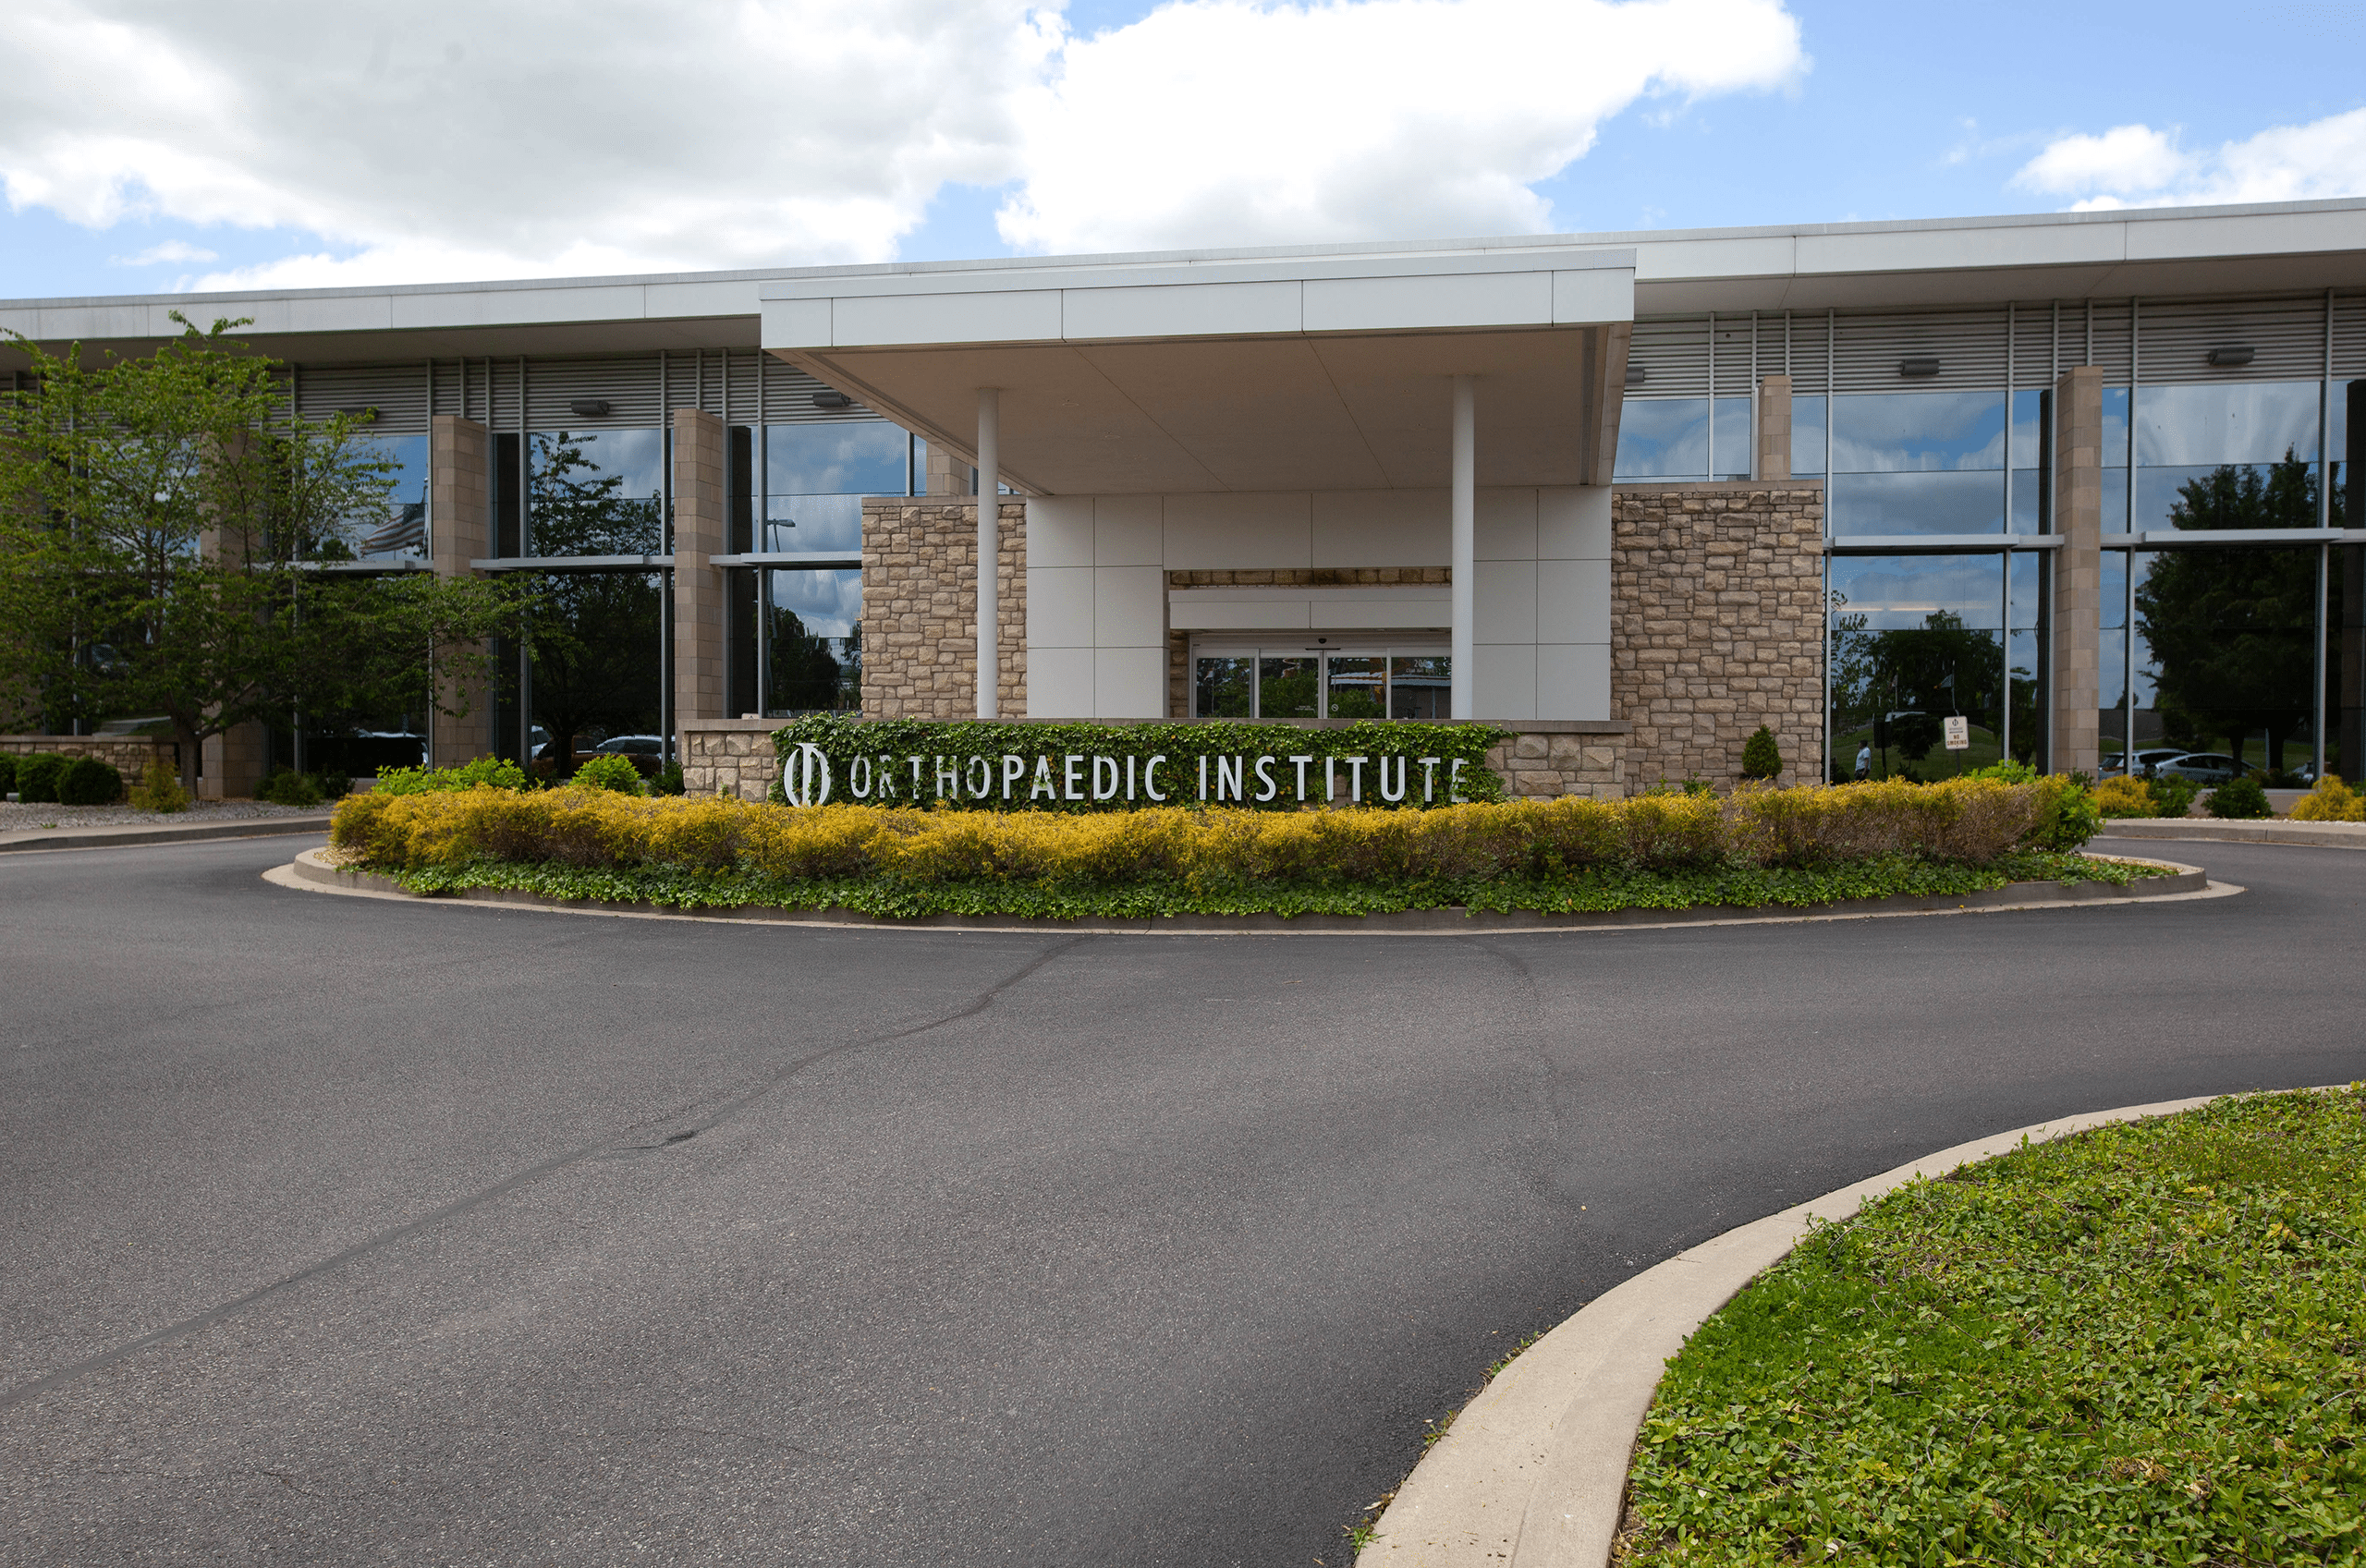 Orthopaedic Institute of Western Kentucky | About Us